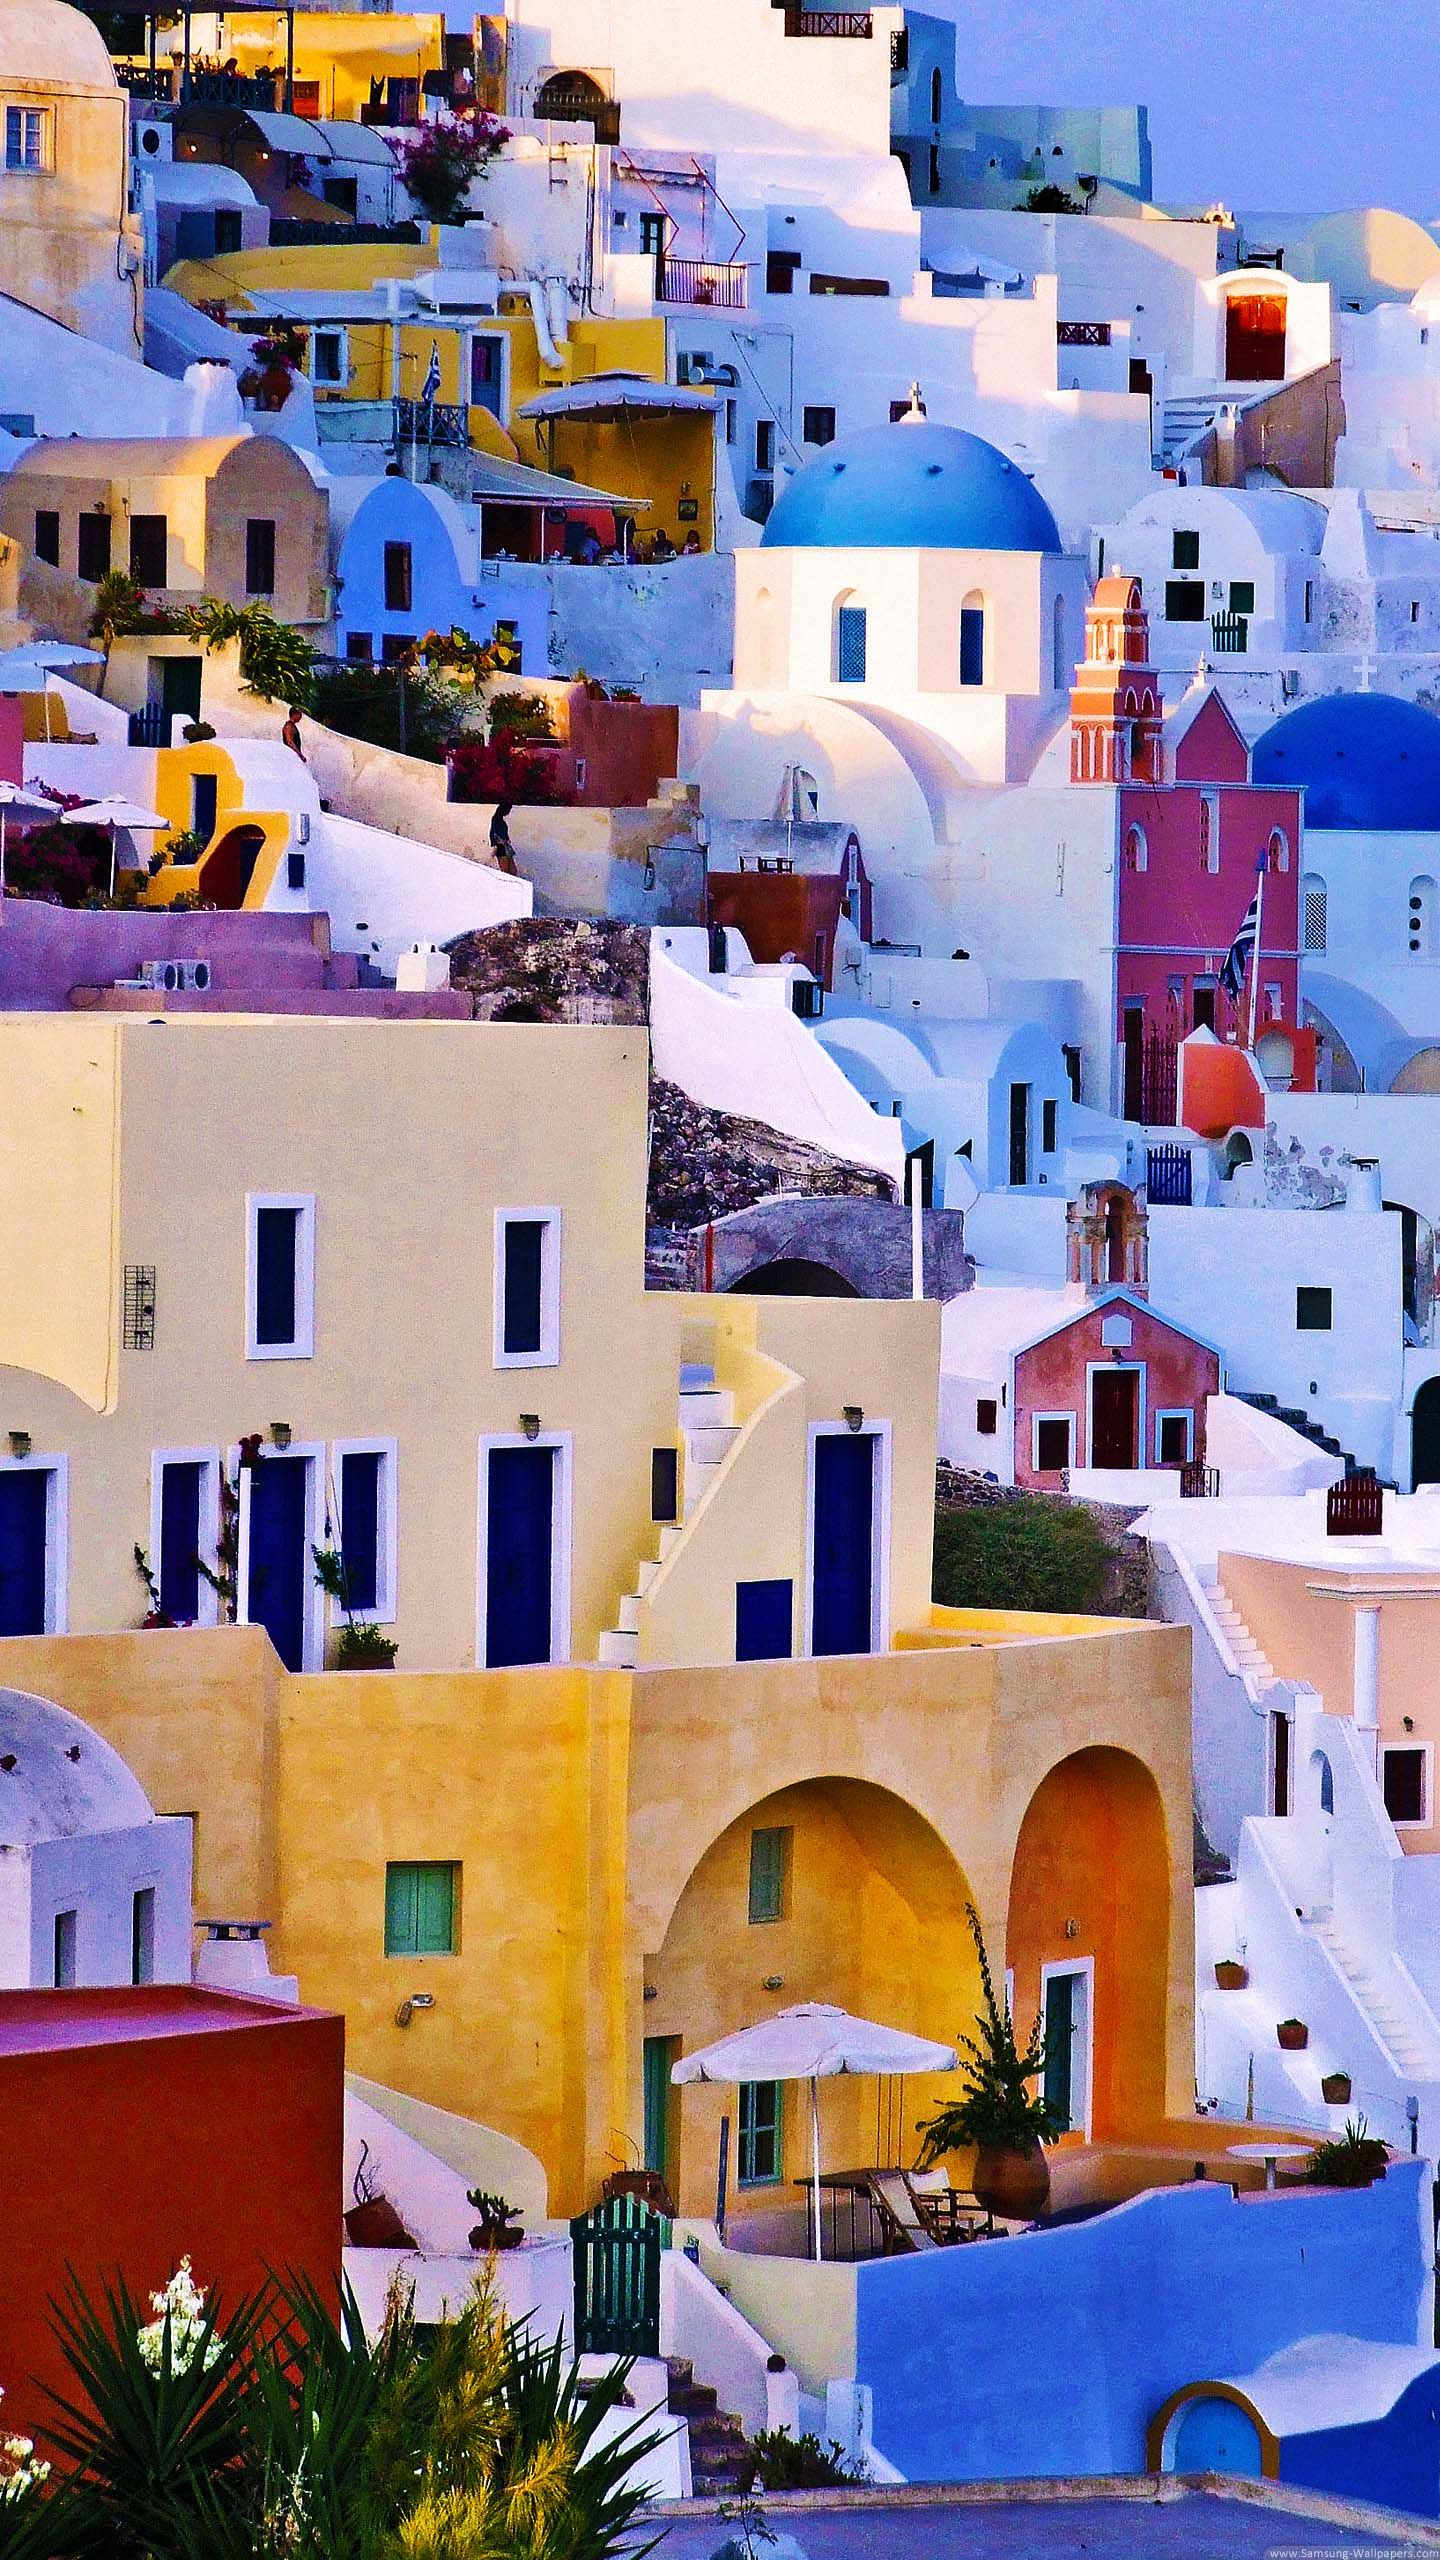 Wallpaper note 4 quad 1440 2560 greece santorini Things that 1440x2560